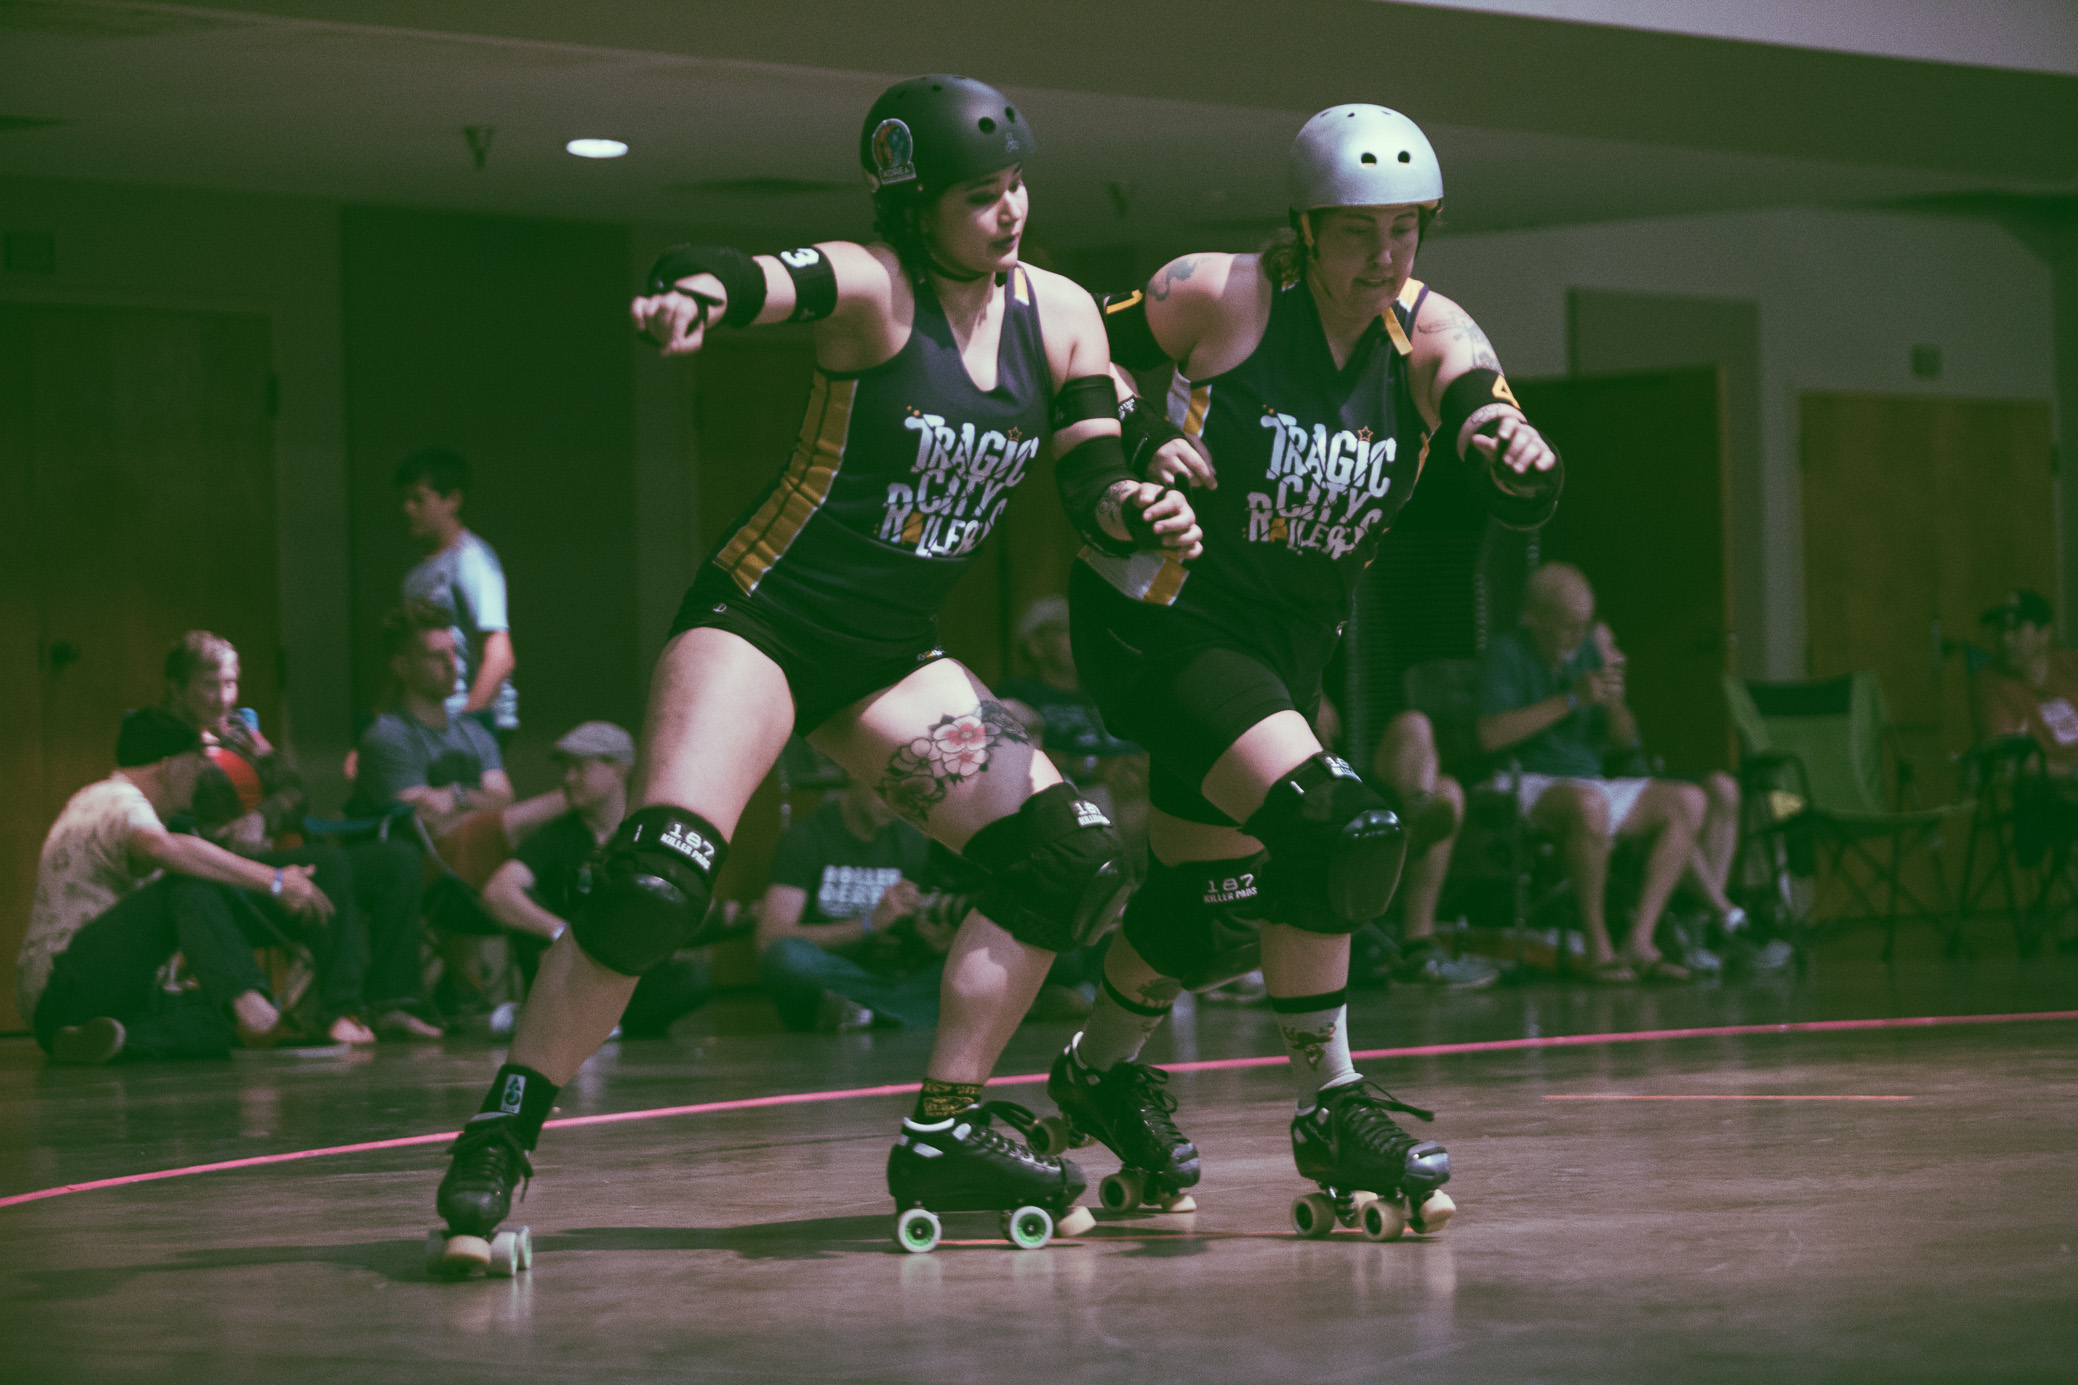 A scene from the roller derby bout between the Tragic City Rollers Iron City Maidens vs. Druid City Dames at Zamora Shrine Center in Irondale, Alabama on May 12th, 2018 . (Photo by David A. Smith/DSmithScenes)